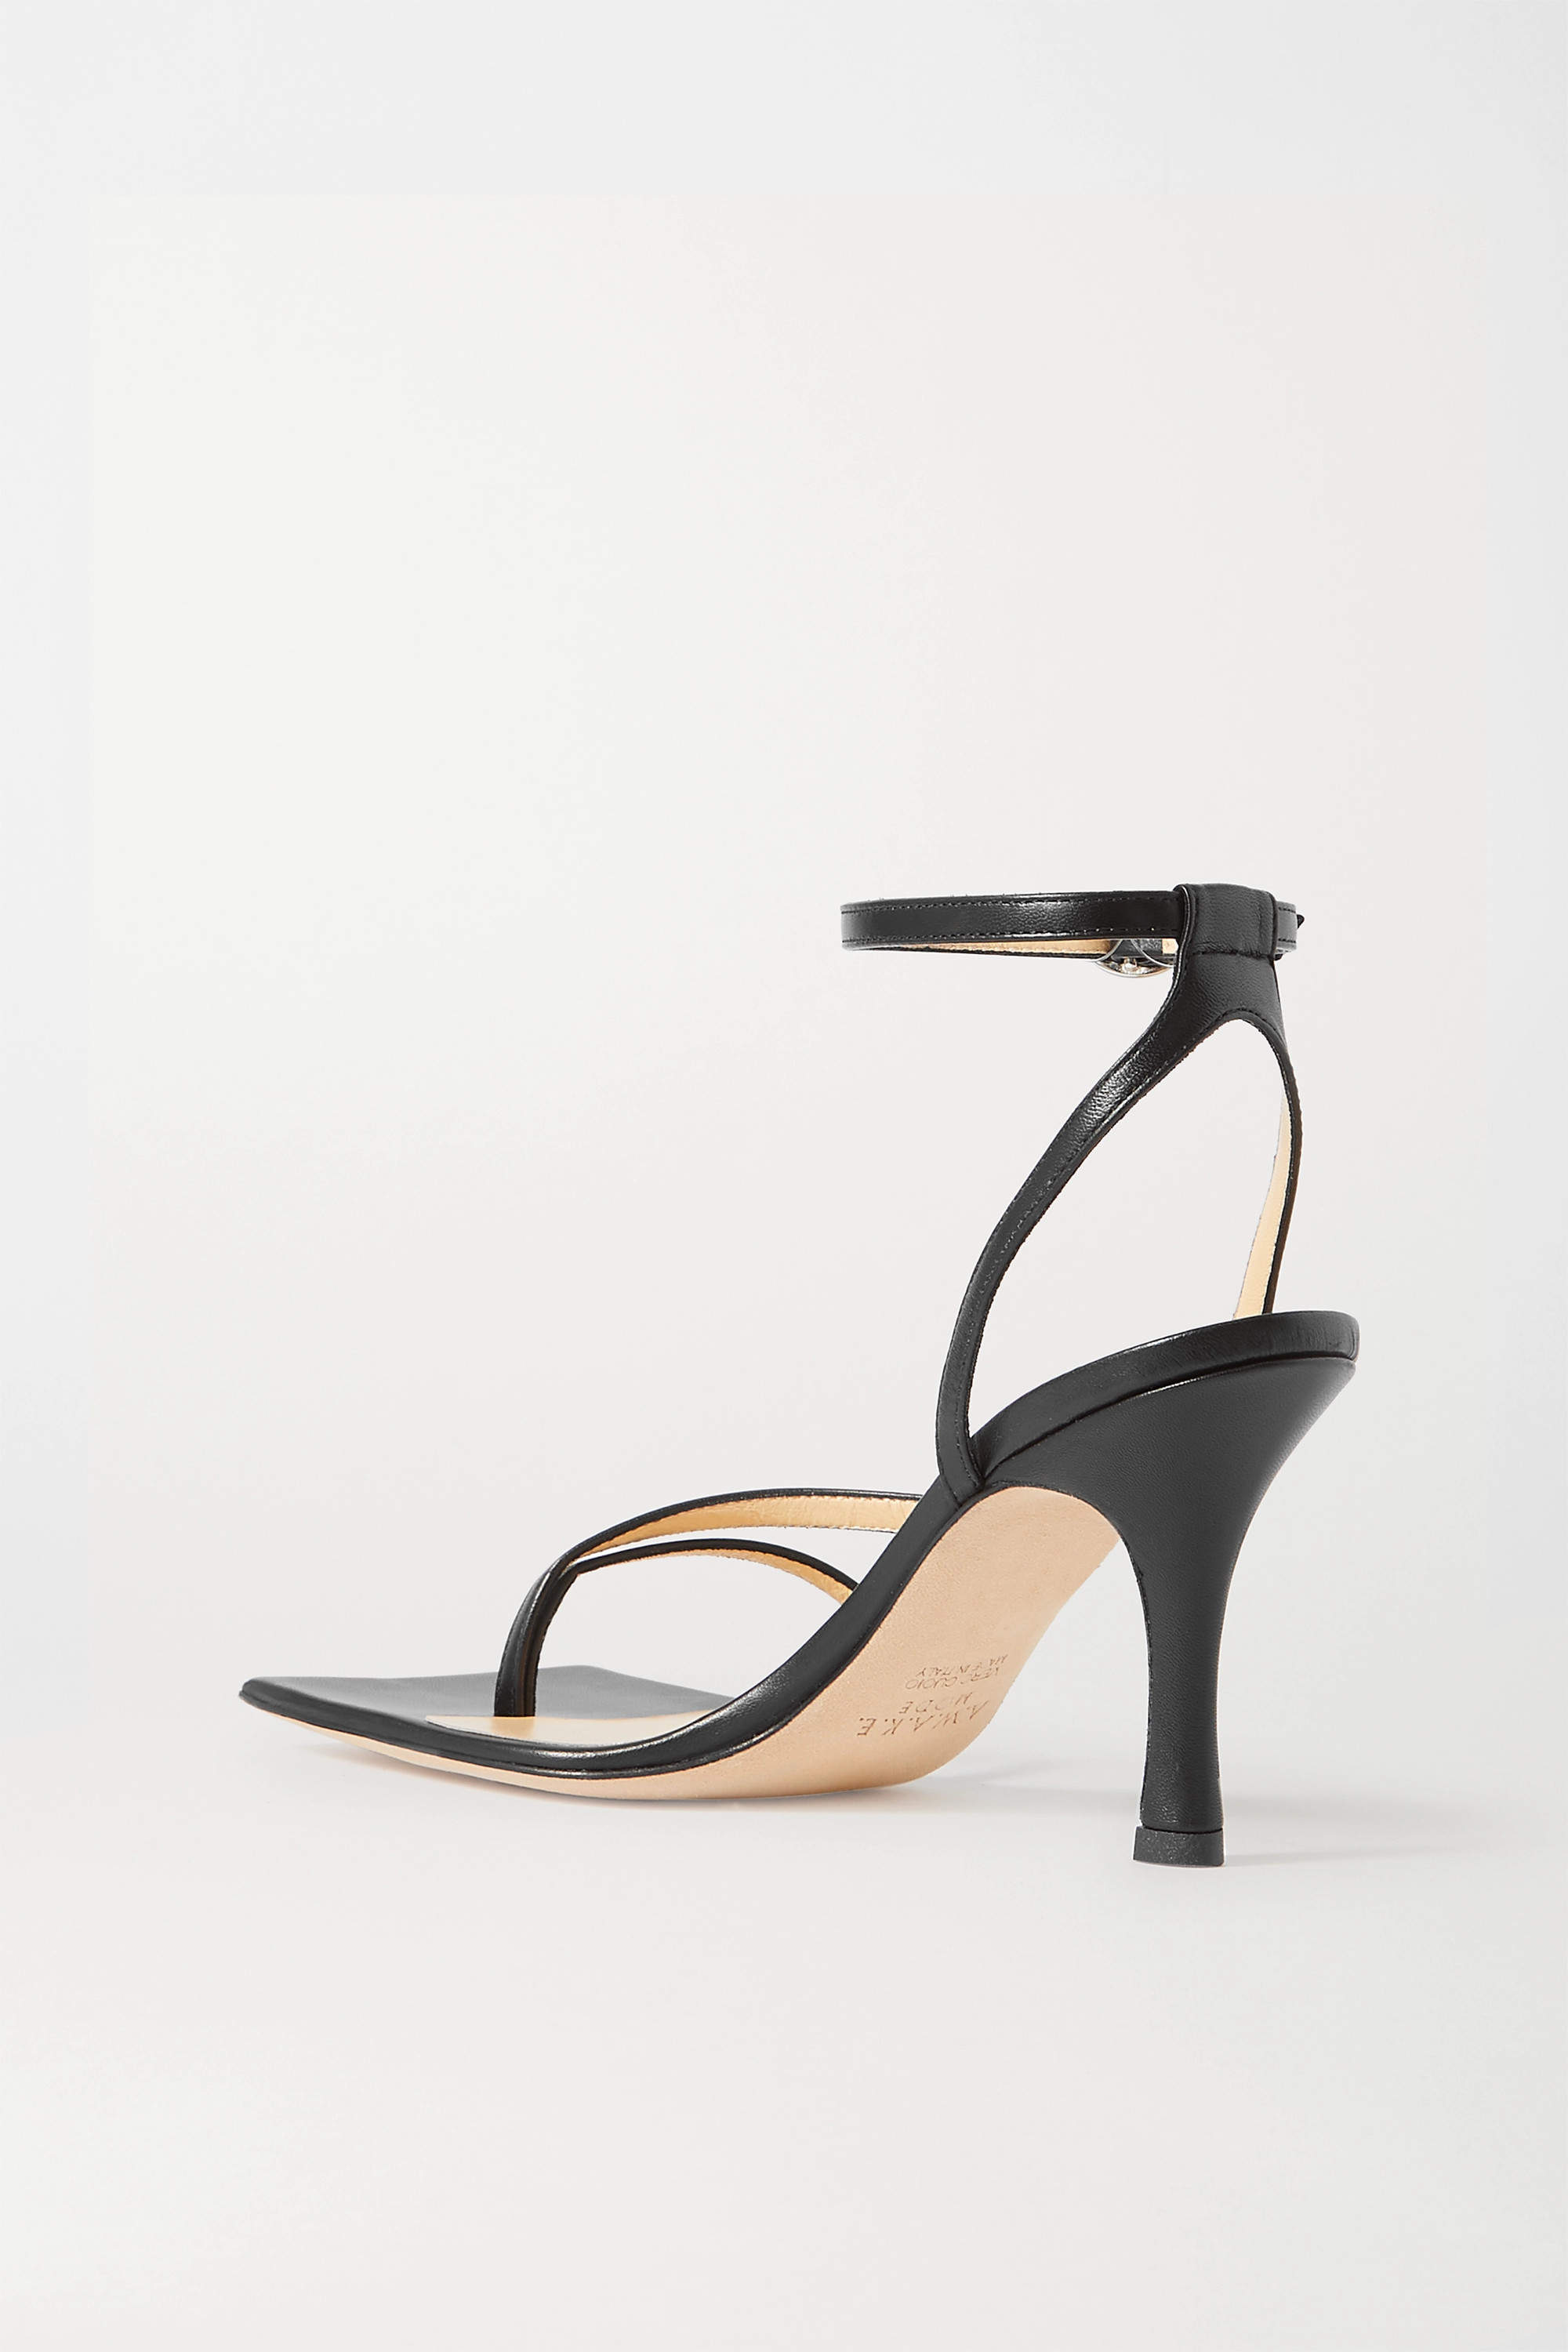 A.W.A.K.E. MODE Delta leather sandals